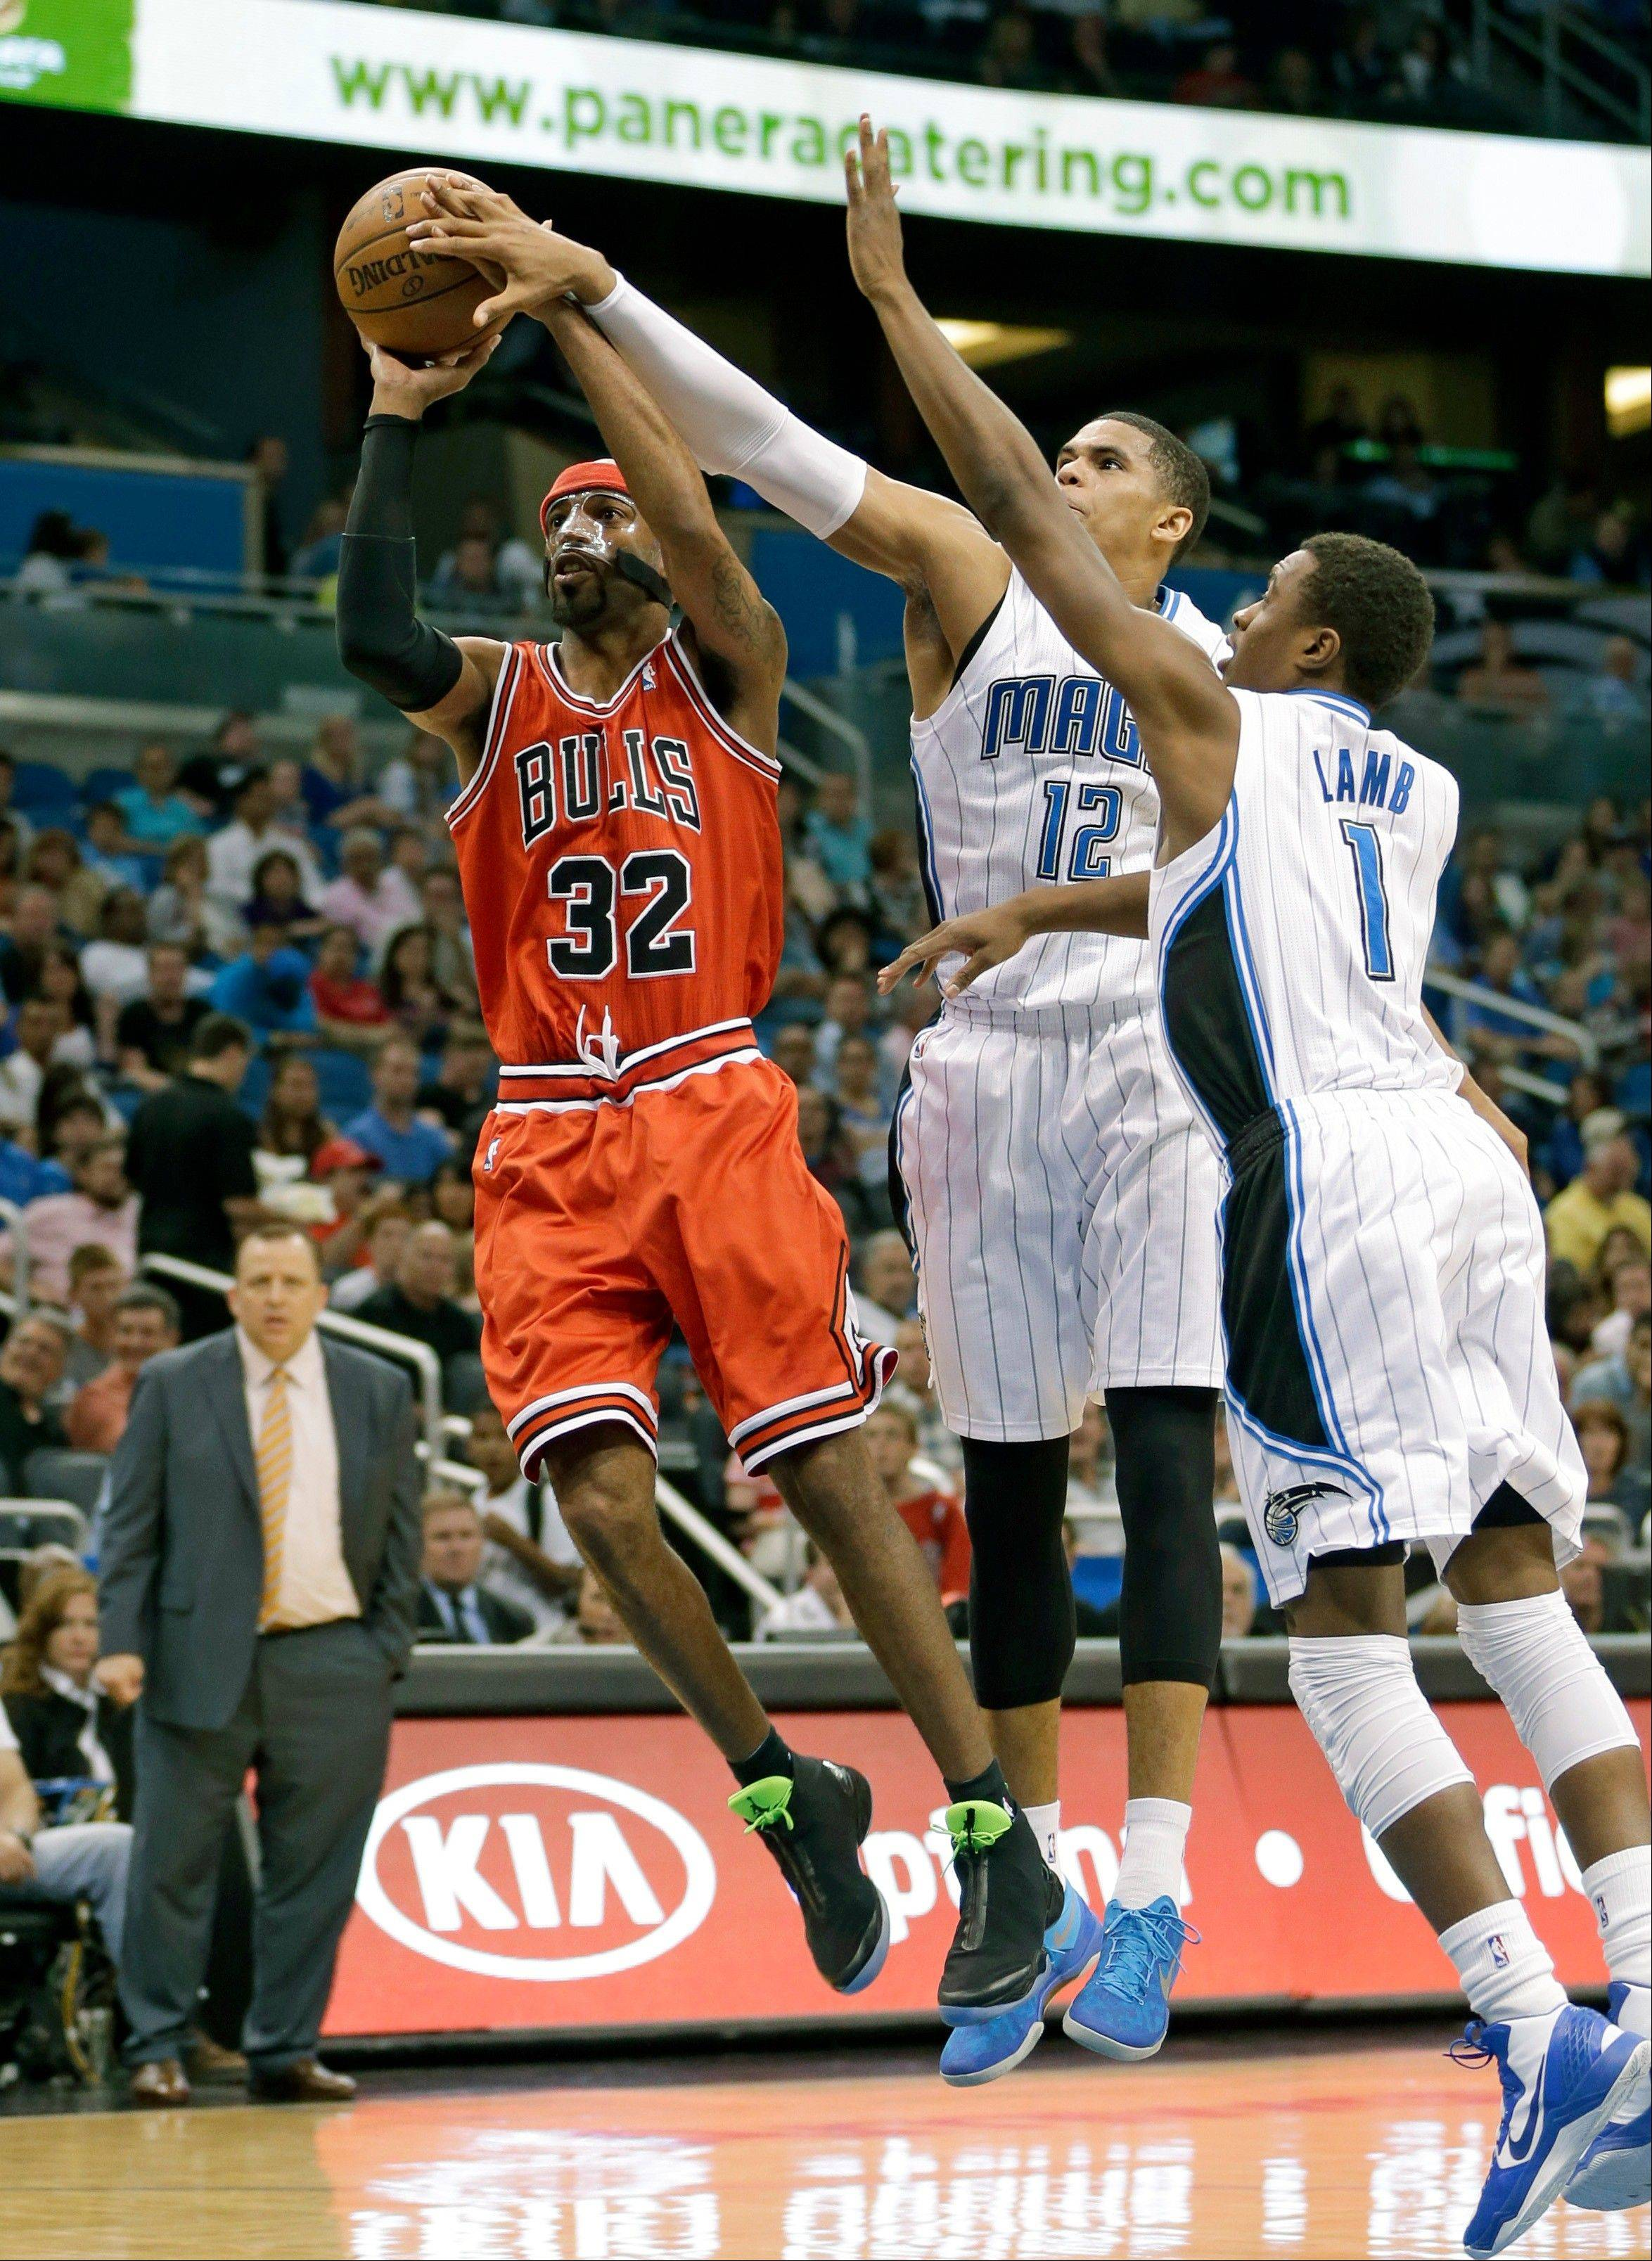 Orlando Magic's Tobias Harris (12) partially blocks a shot by the Bulls' Richard Hamilton (32) as Doron Lamb (1) comes in to assist during the first half of the game, Monday in Orlando. The Bulls won 102-84.